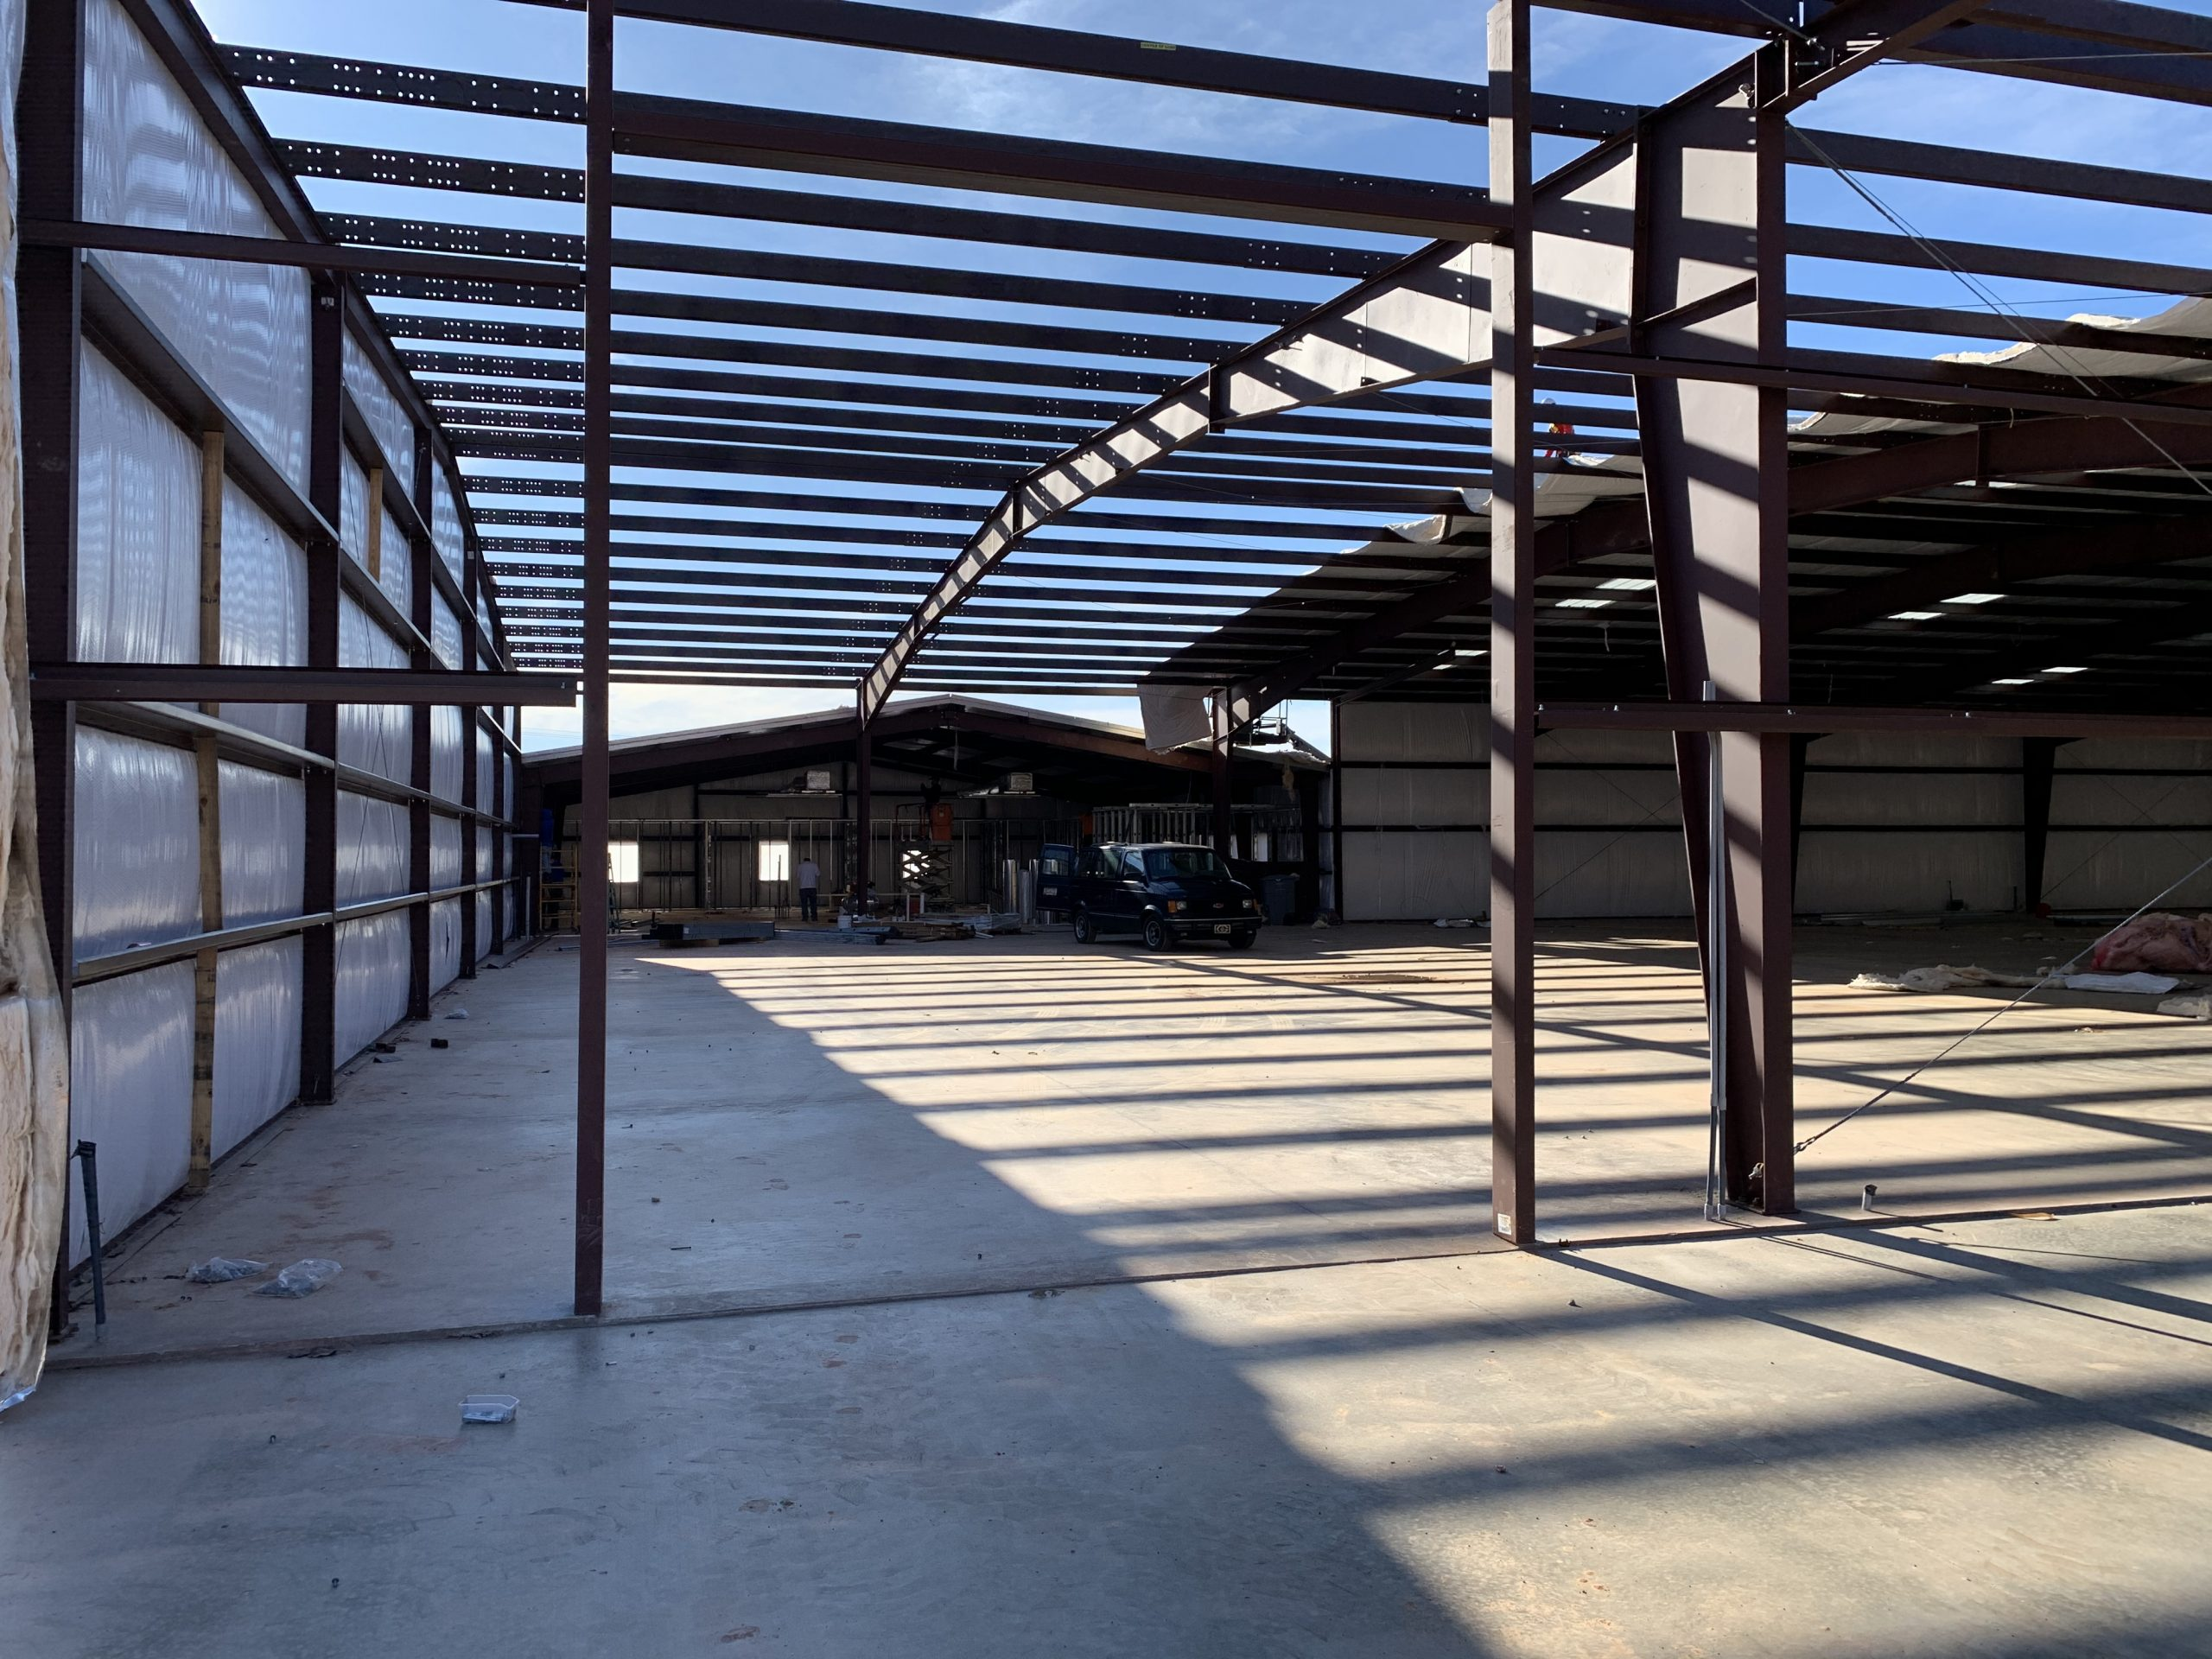 Steel Frame Building Progress Photo In Industrial Setting